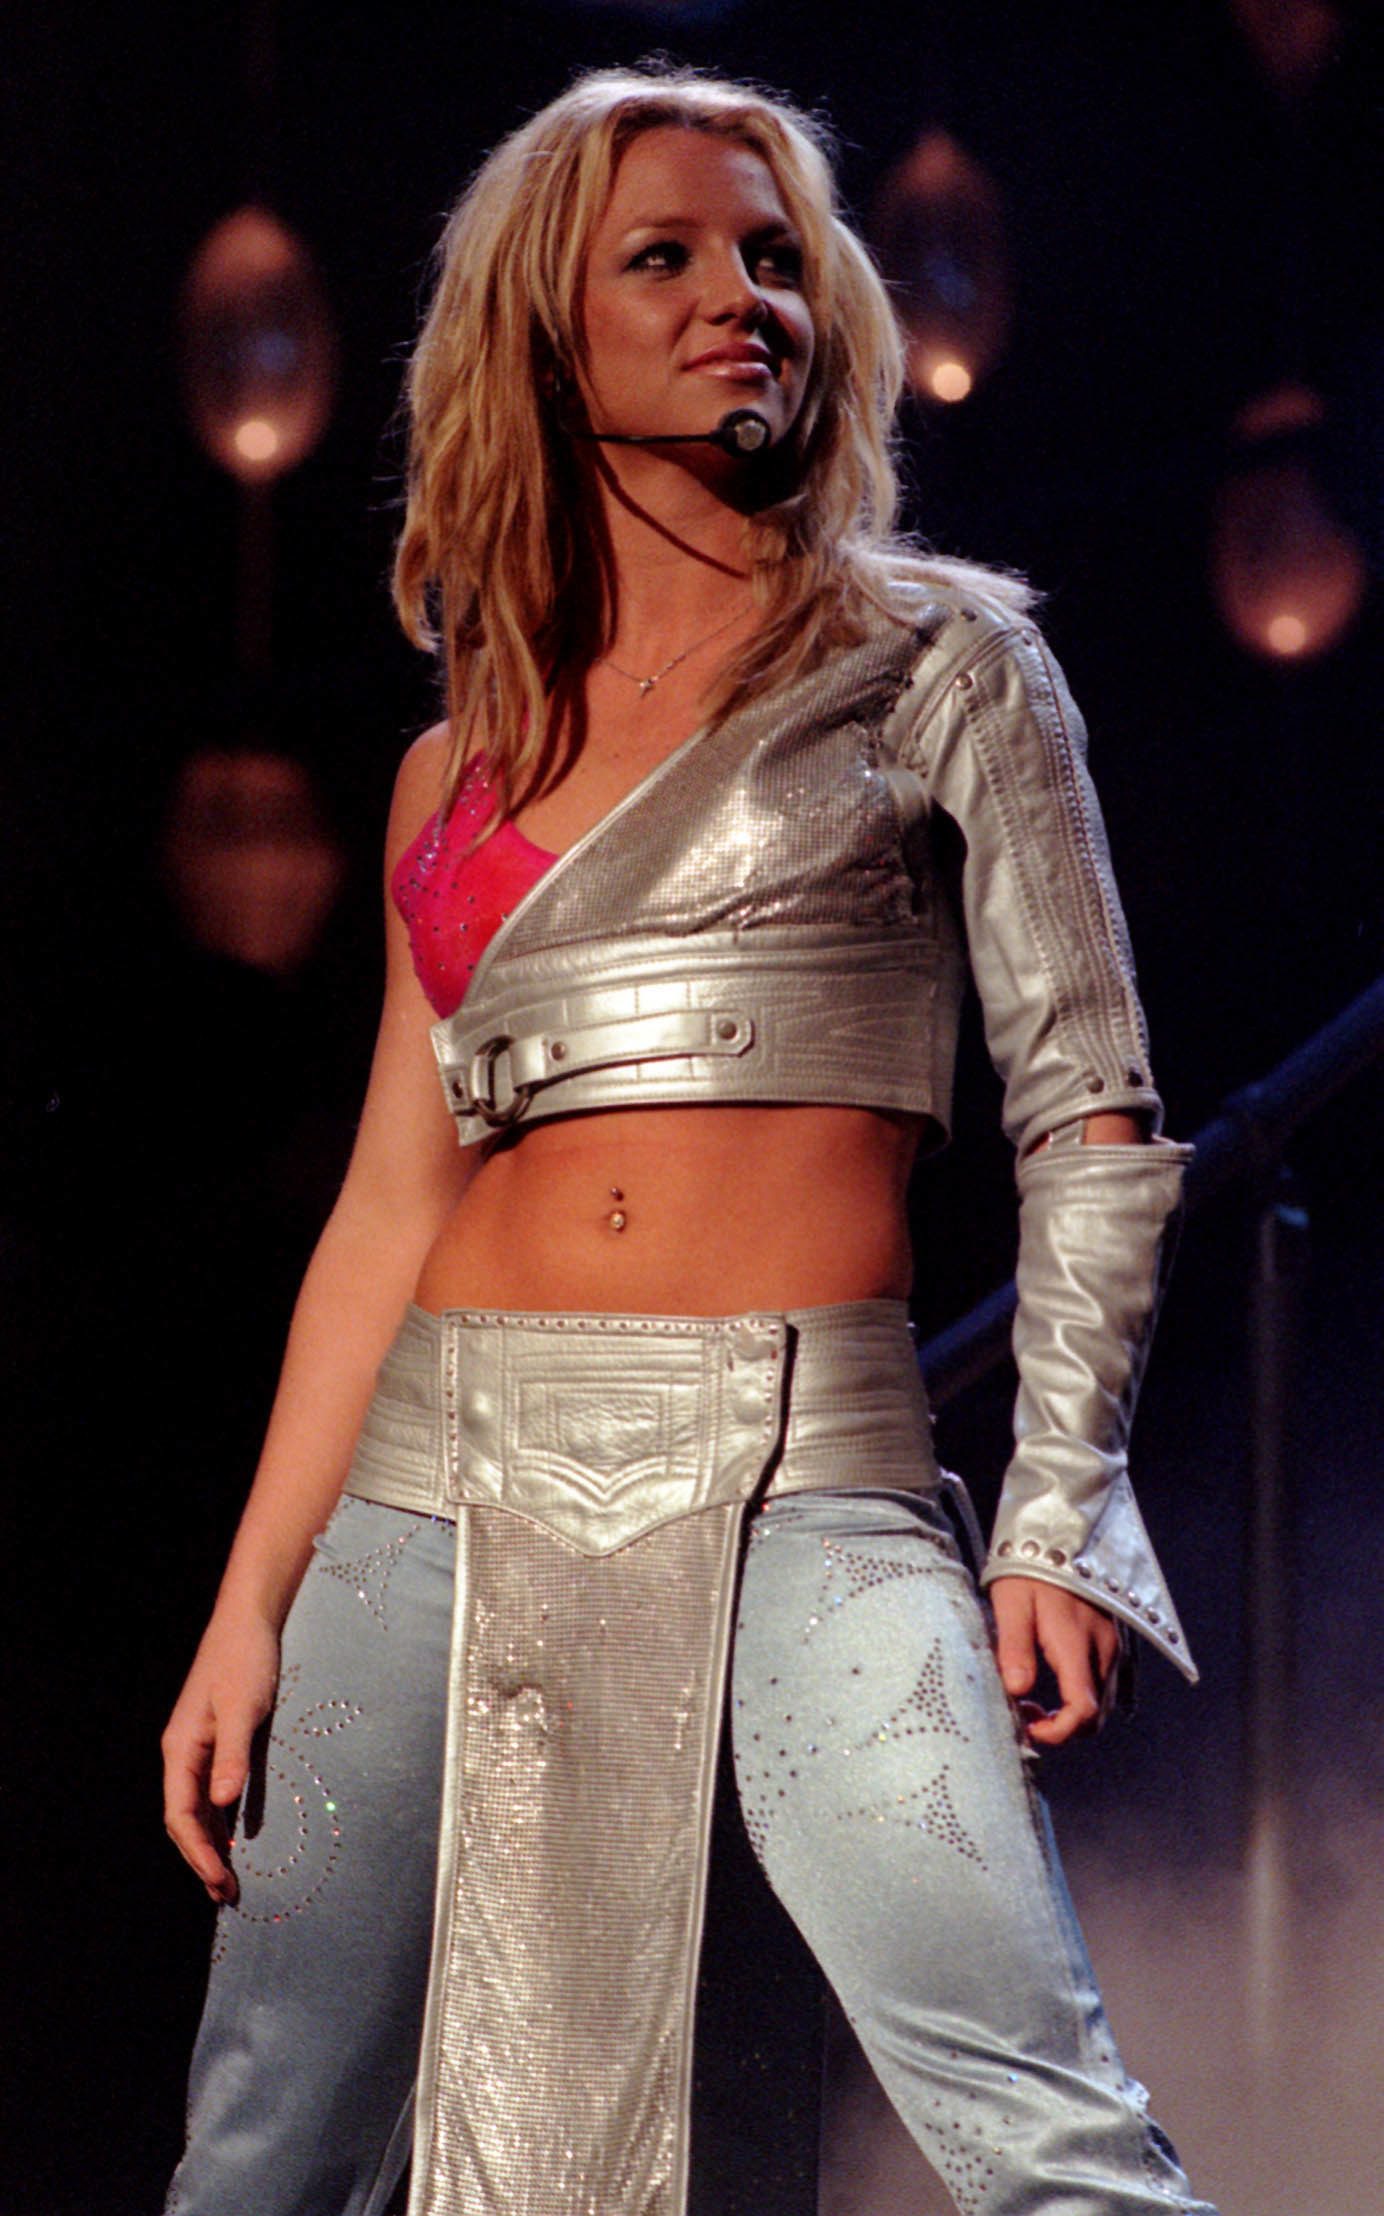 Britney Speaers performing in 2001